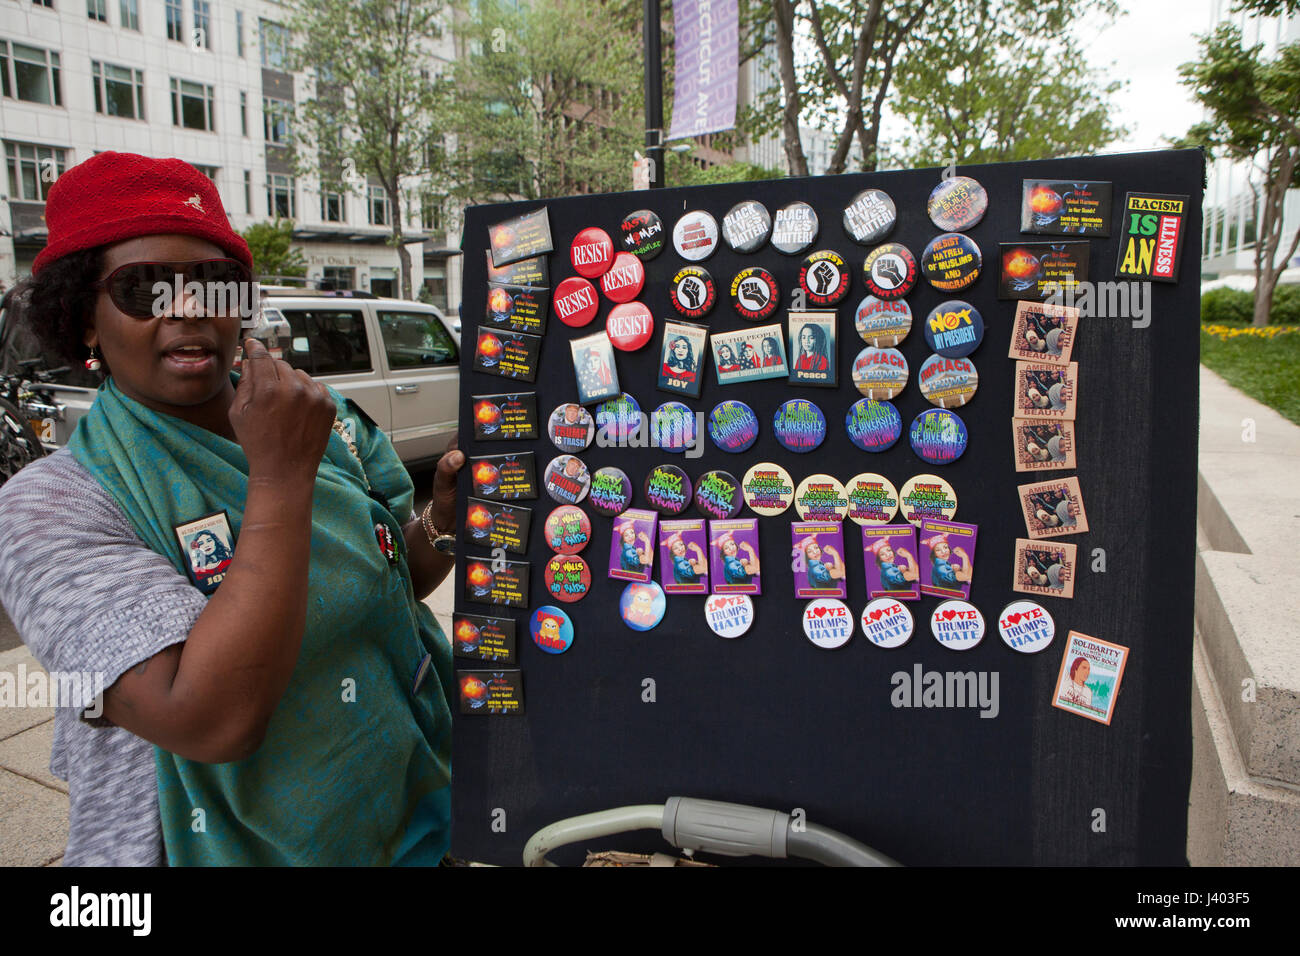 African-American woman selling Liberal issues and feminist movement related buttons on street - Washington, DC USA - Stock Image